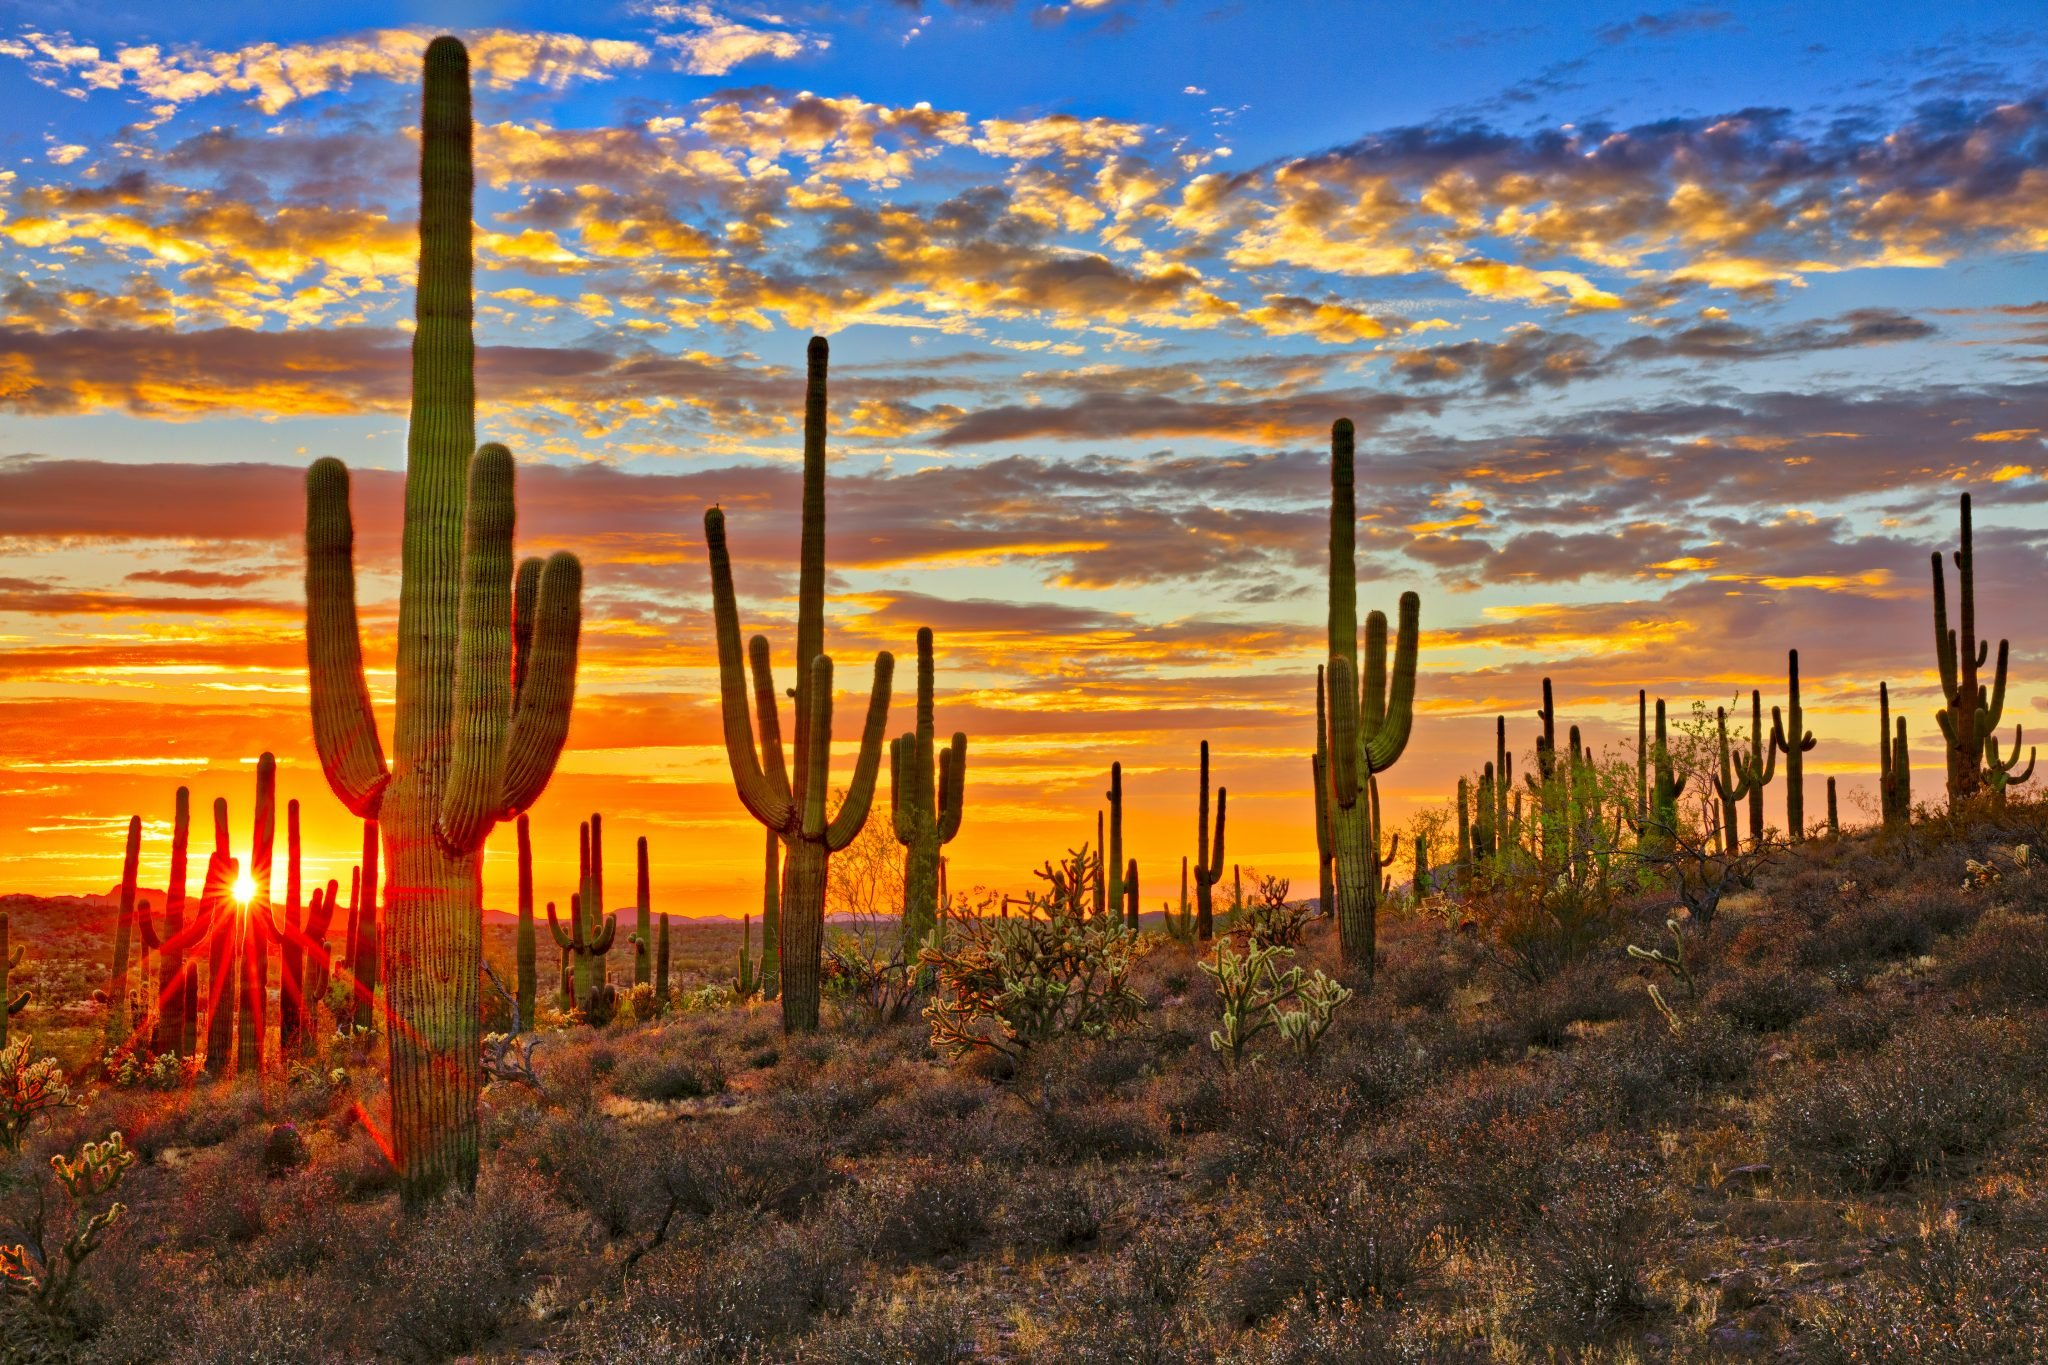 sunset over sonoran desert with saguaro cacti in foreground near phoeniz az, one of the best places to visit in arizona